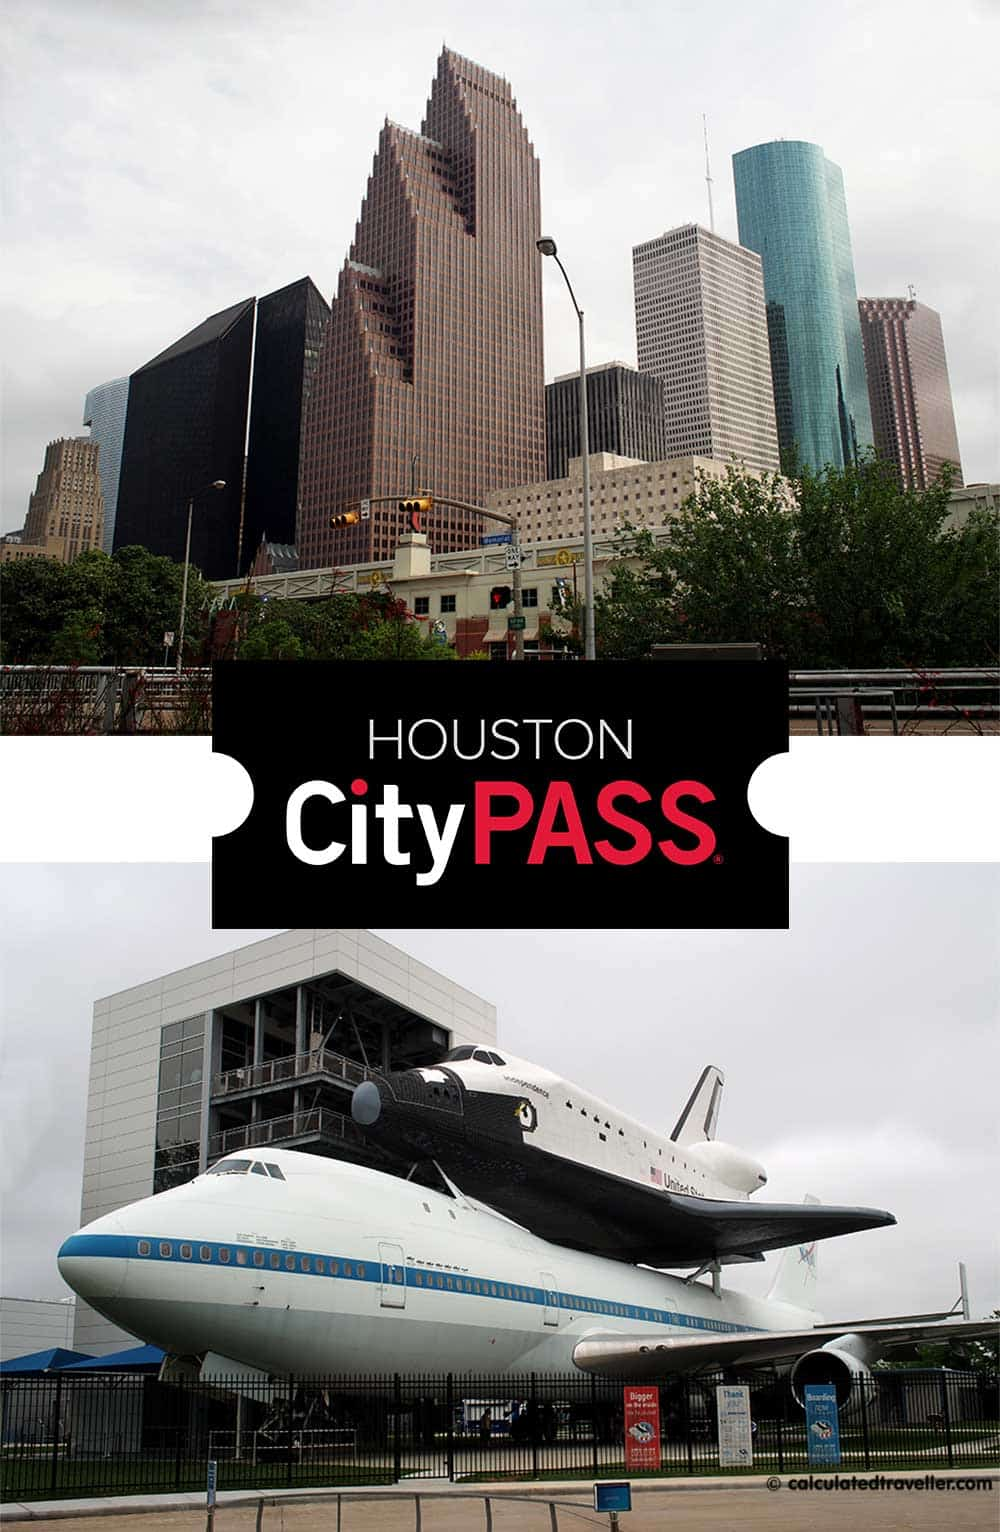 CityPASS Houston Texas - The Best Way to Tour Houston Texas by Calculated Traveller